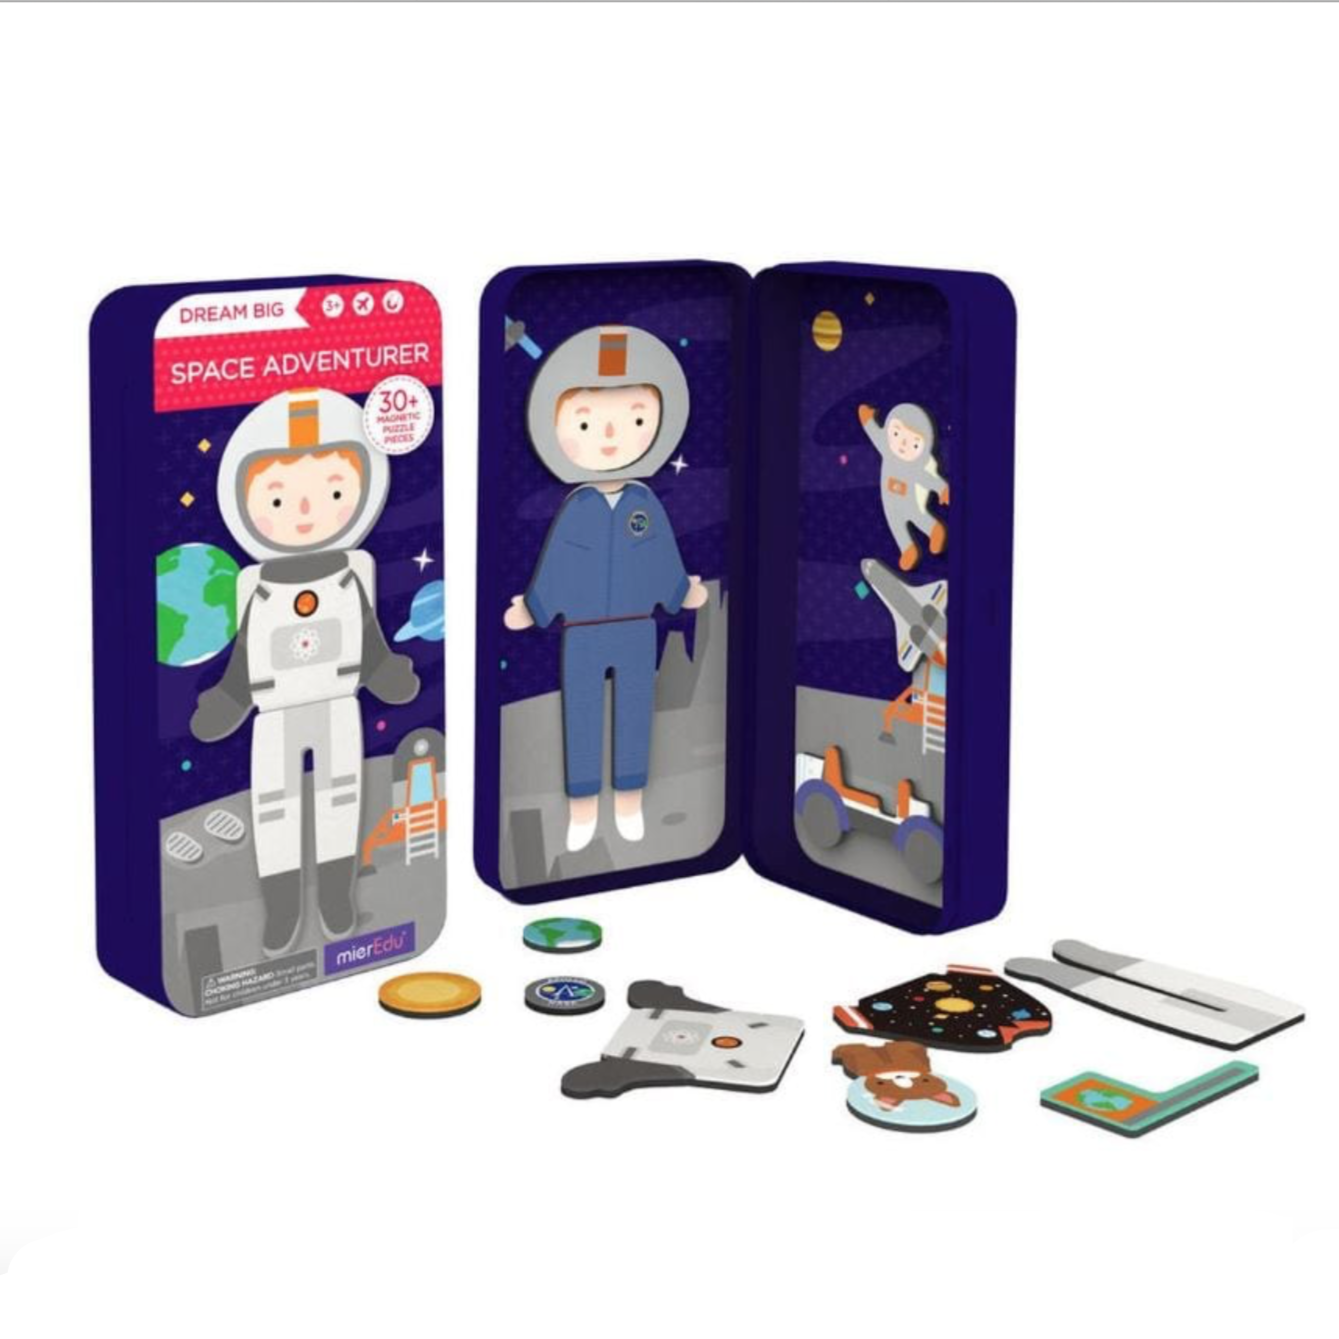 Dream Big Magnetic Puzzle Box Space Adventurer